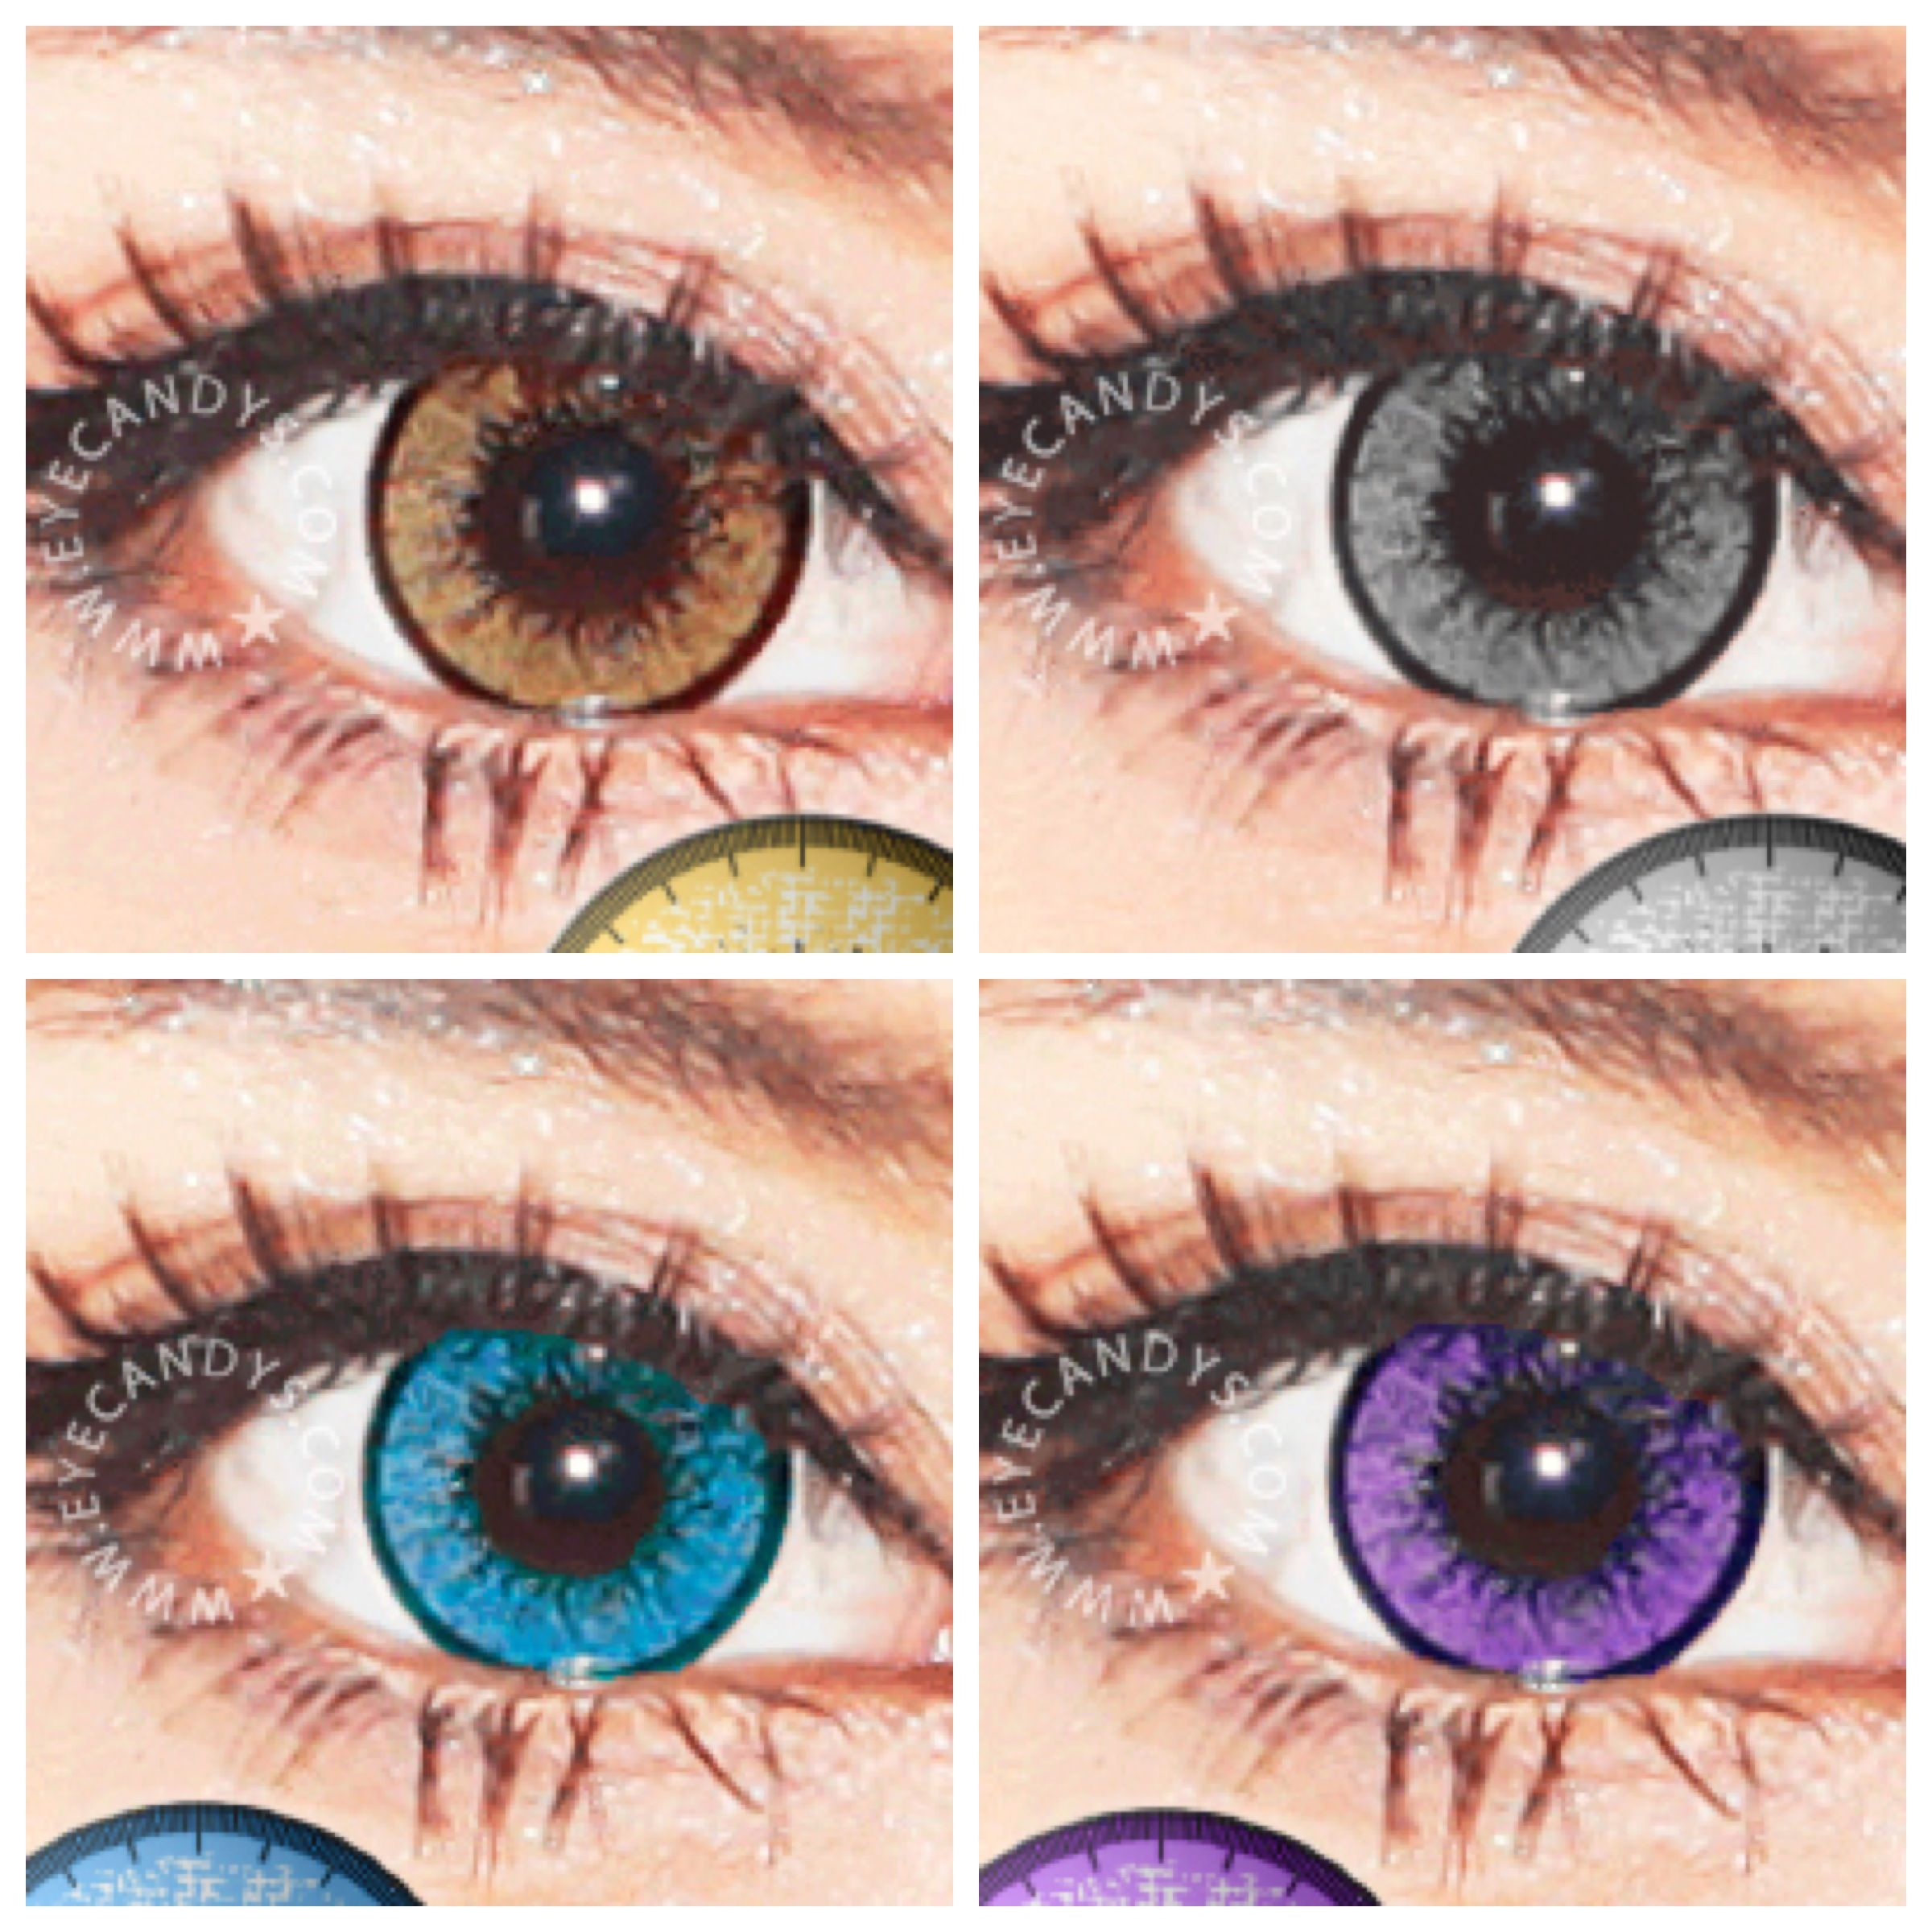 EOS New Adult color contact lenses - which color is your fave? #eyecandys #circlelens